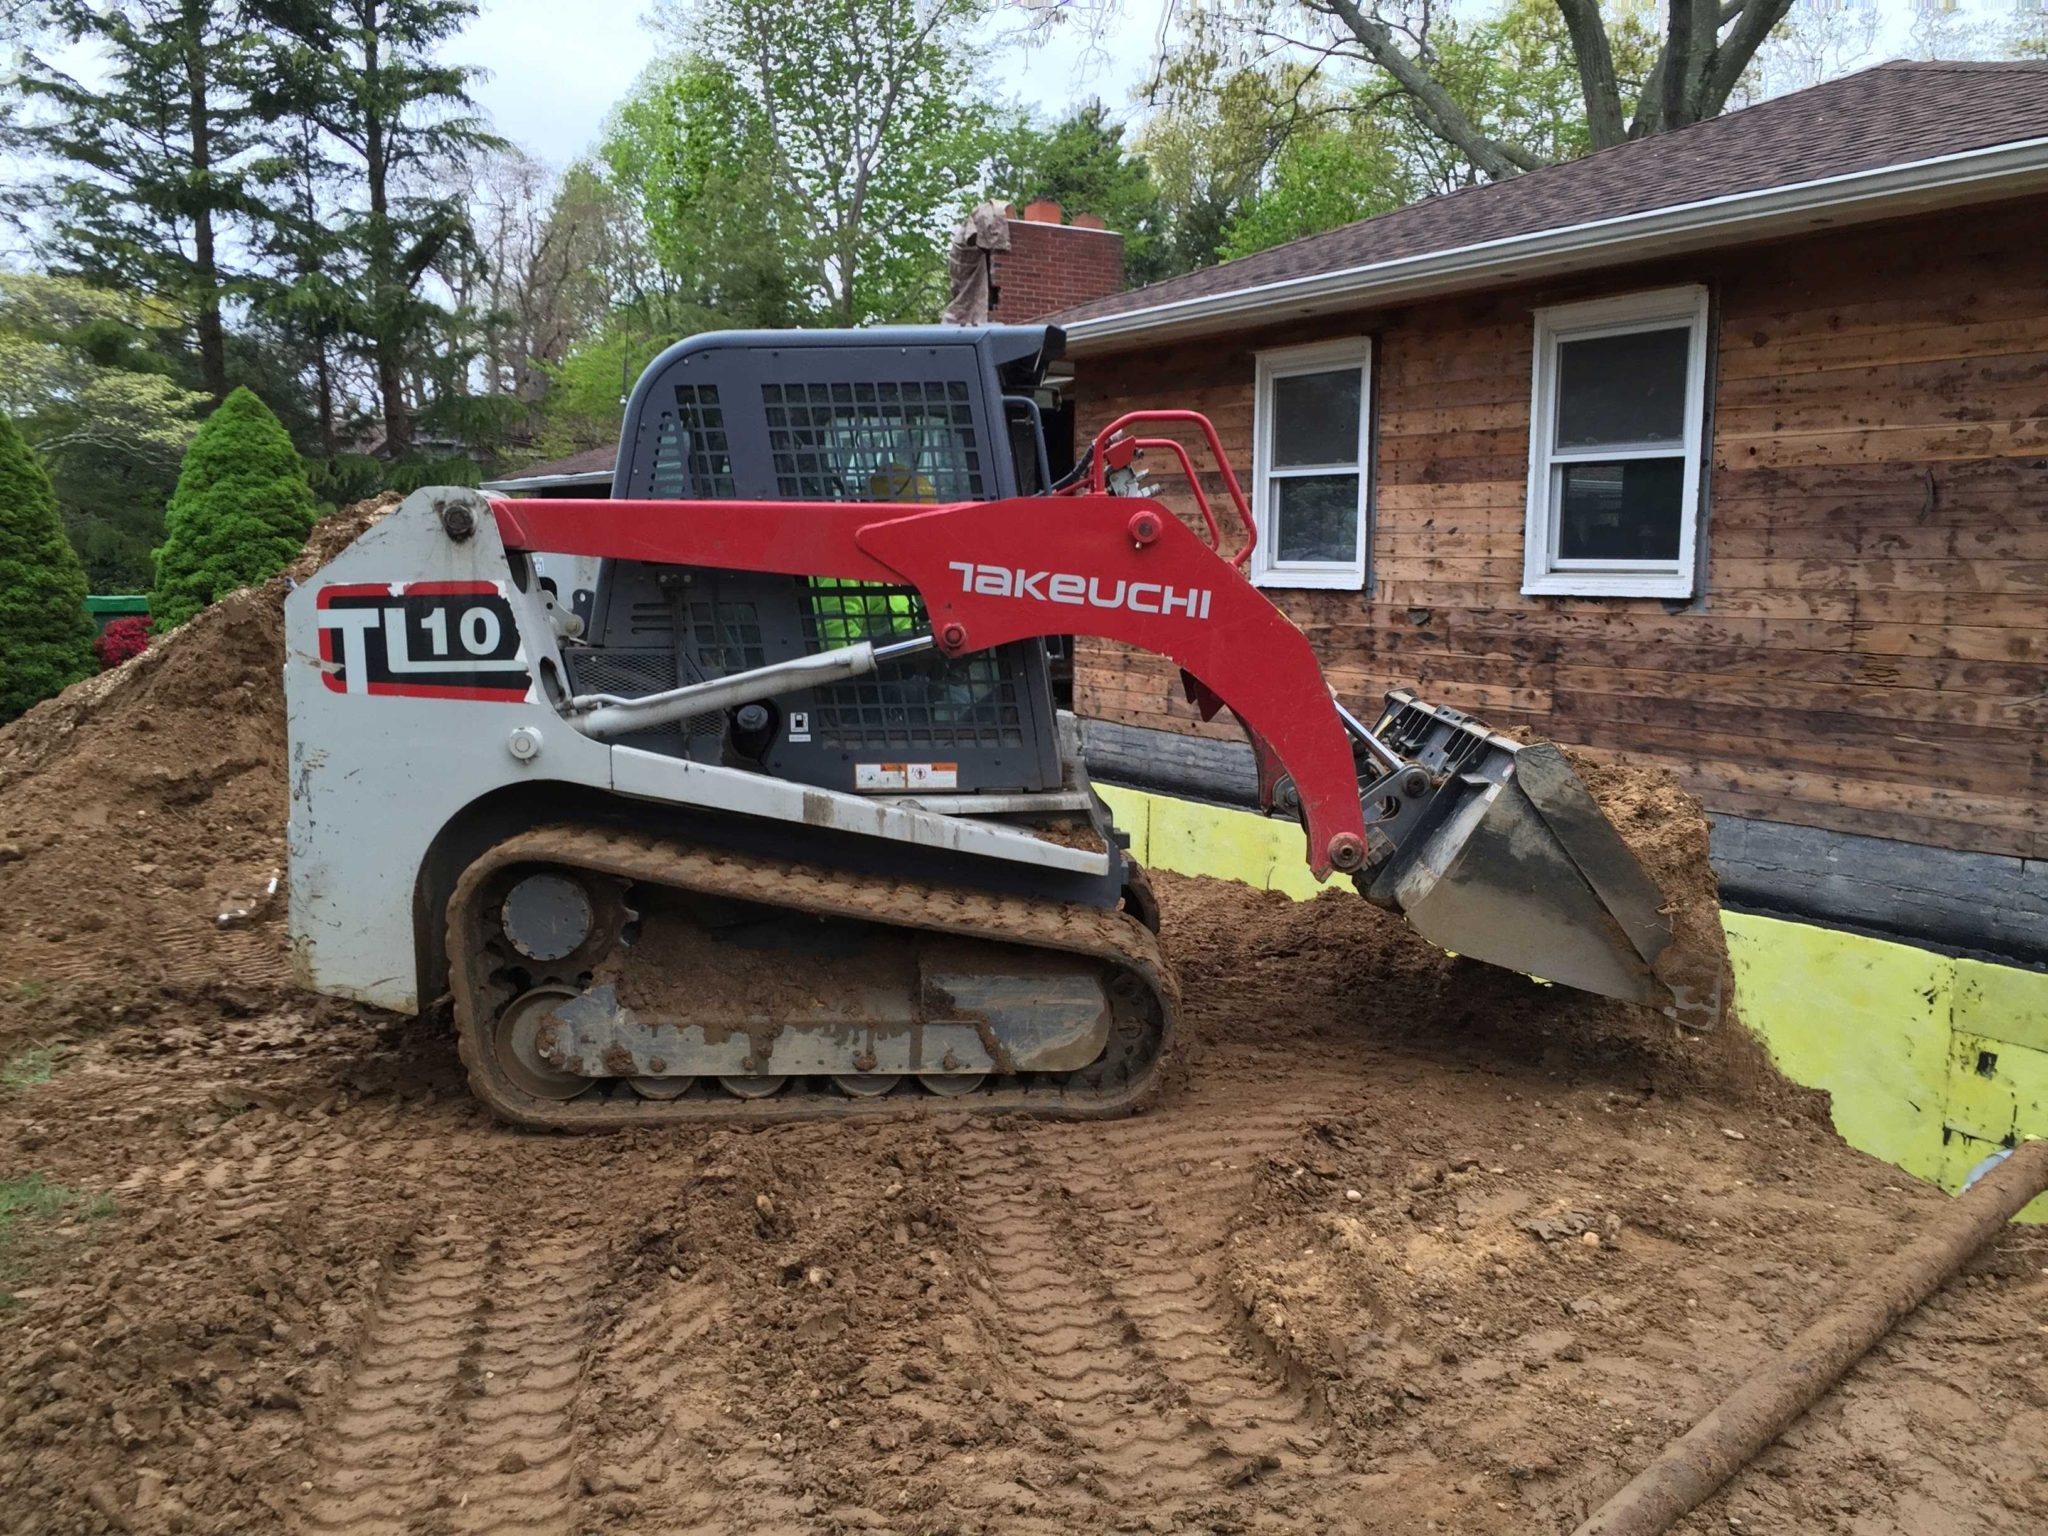 track loader pushing dirt